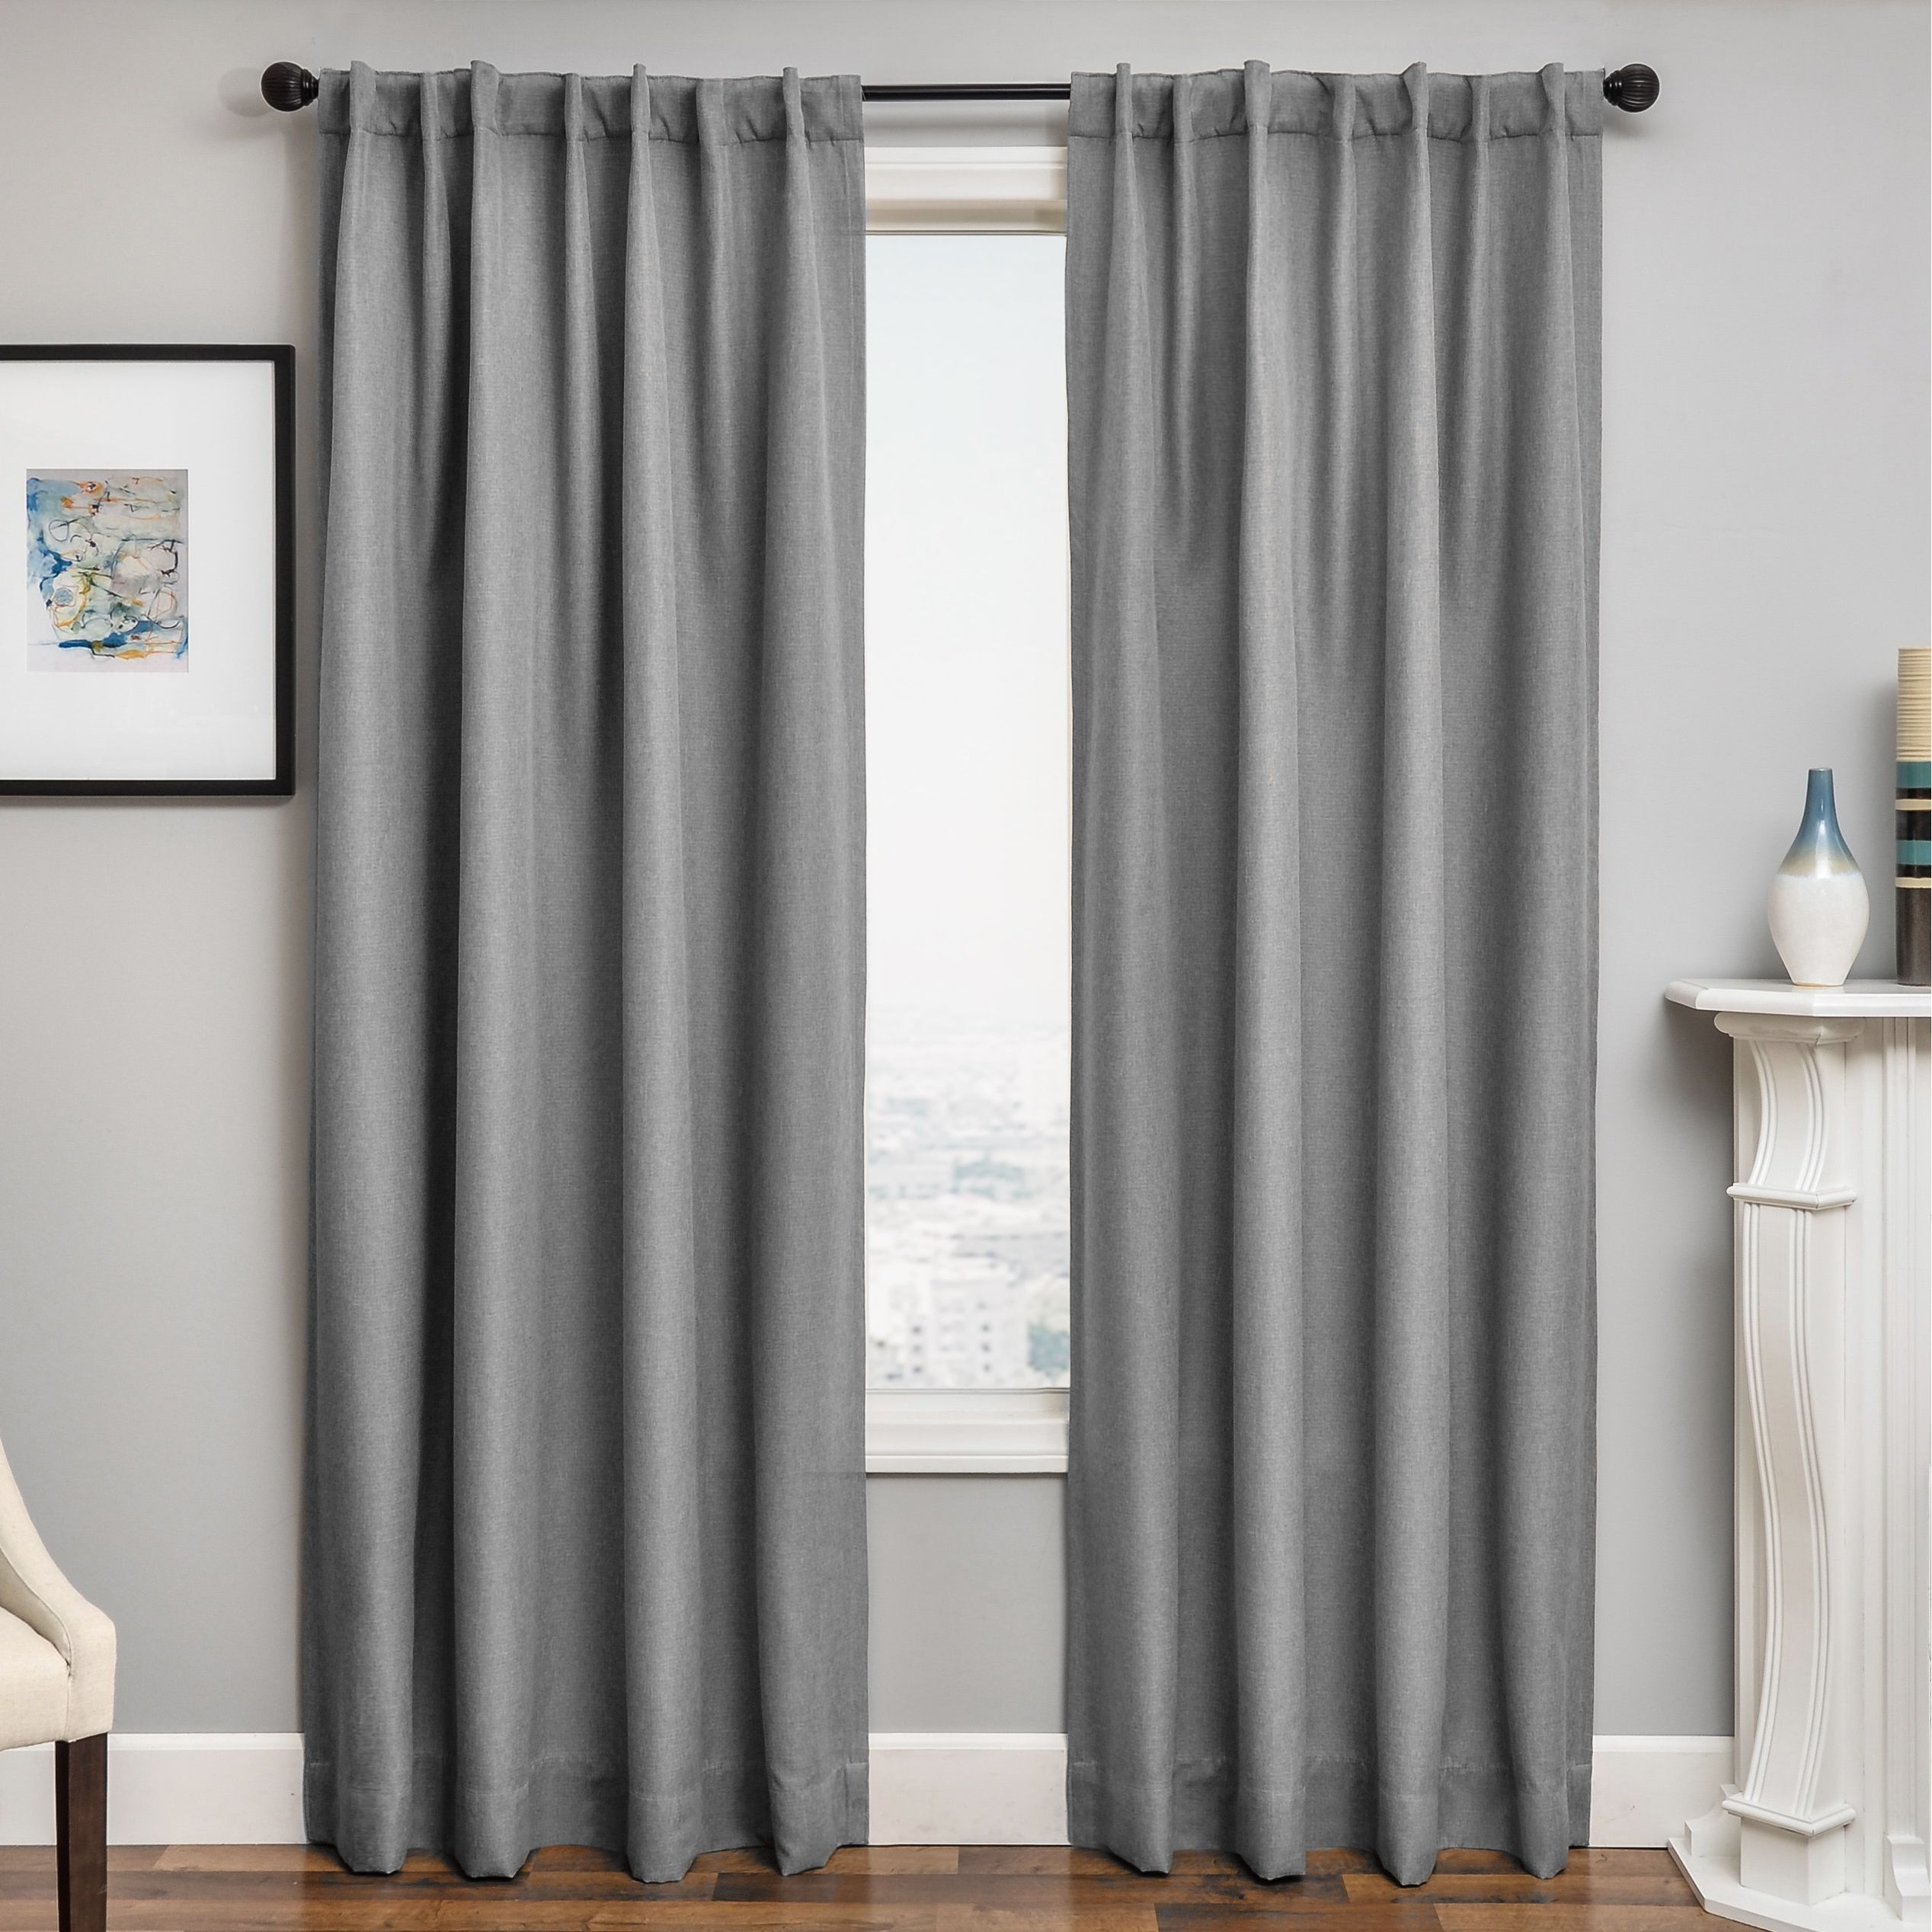 Fashionable Softline Solara Faux Linen Blackout Curtain Panel (54x84 With Regard To Faux Linen Blackout Curtains (View 18 of 20)